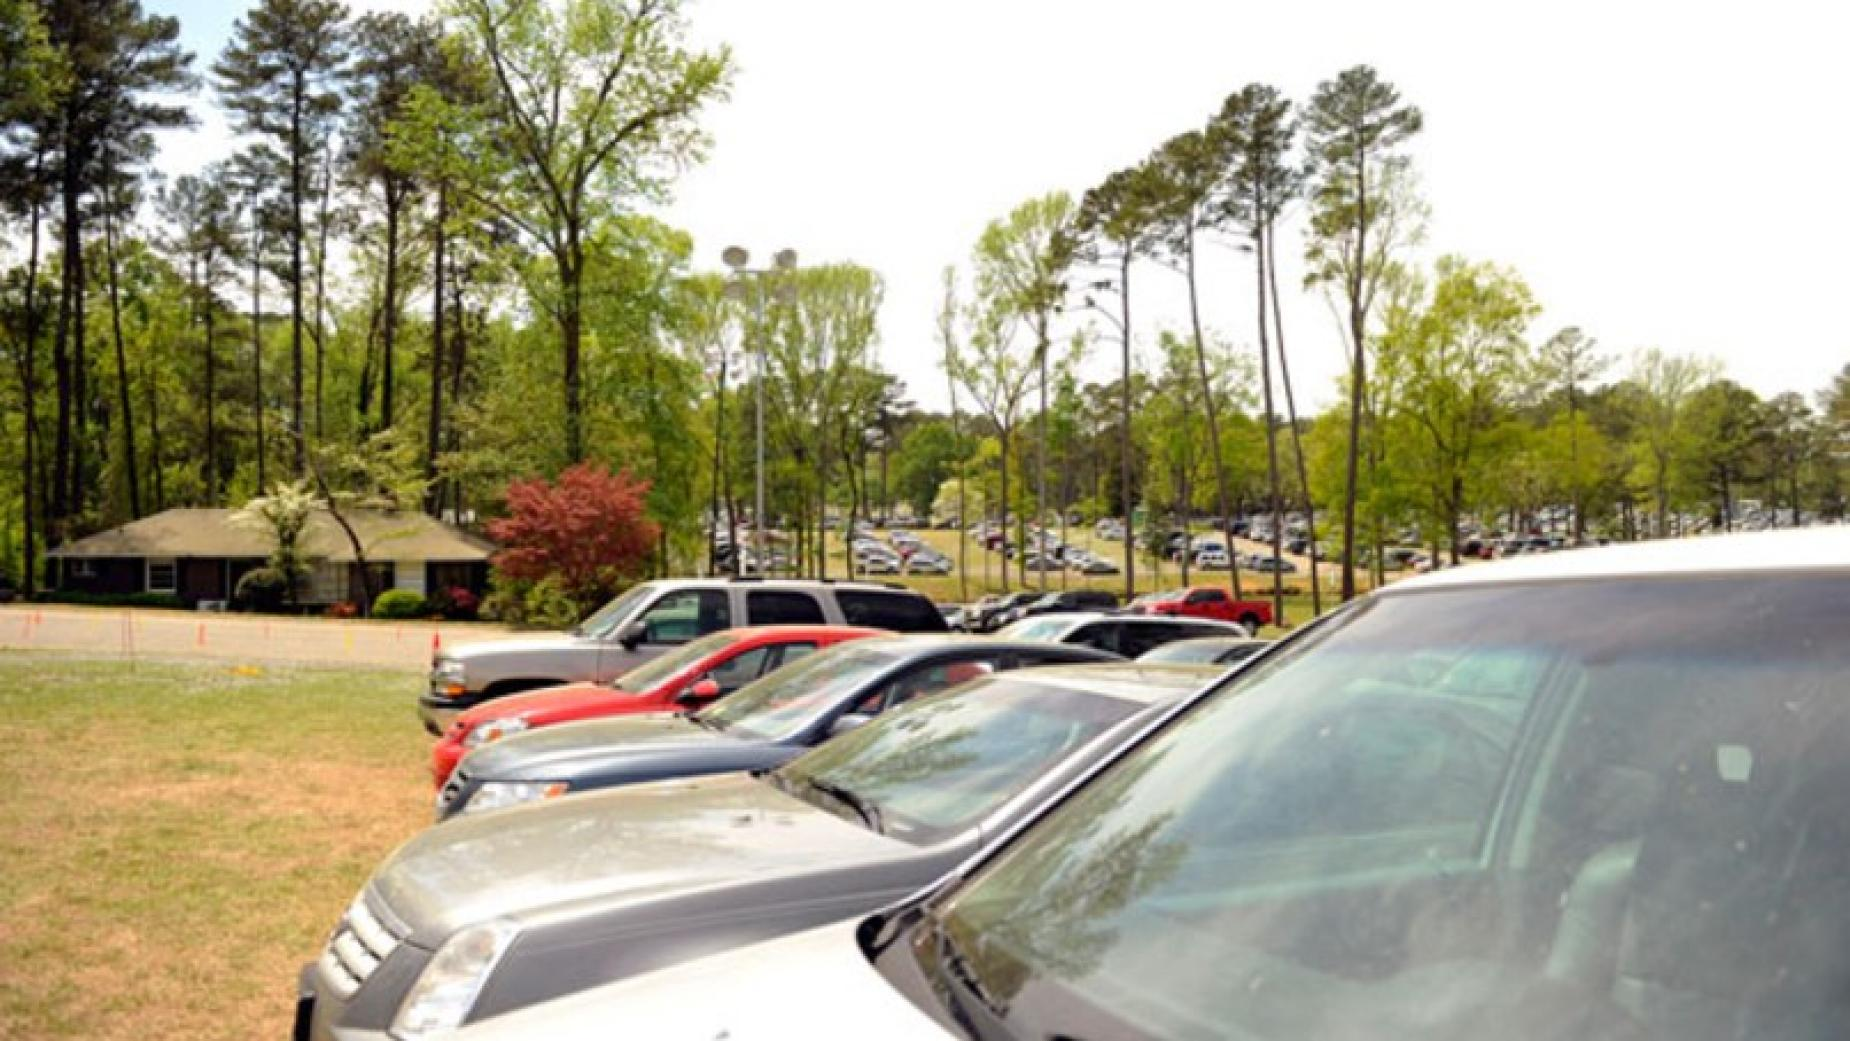 160408-masters-parking-lot-house.jpg